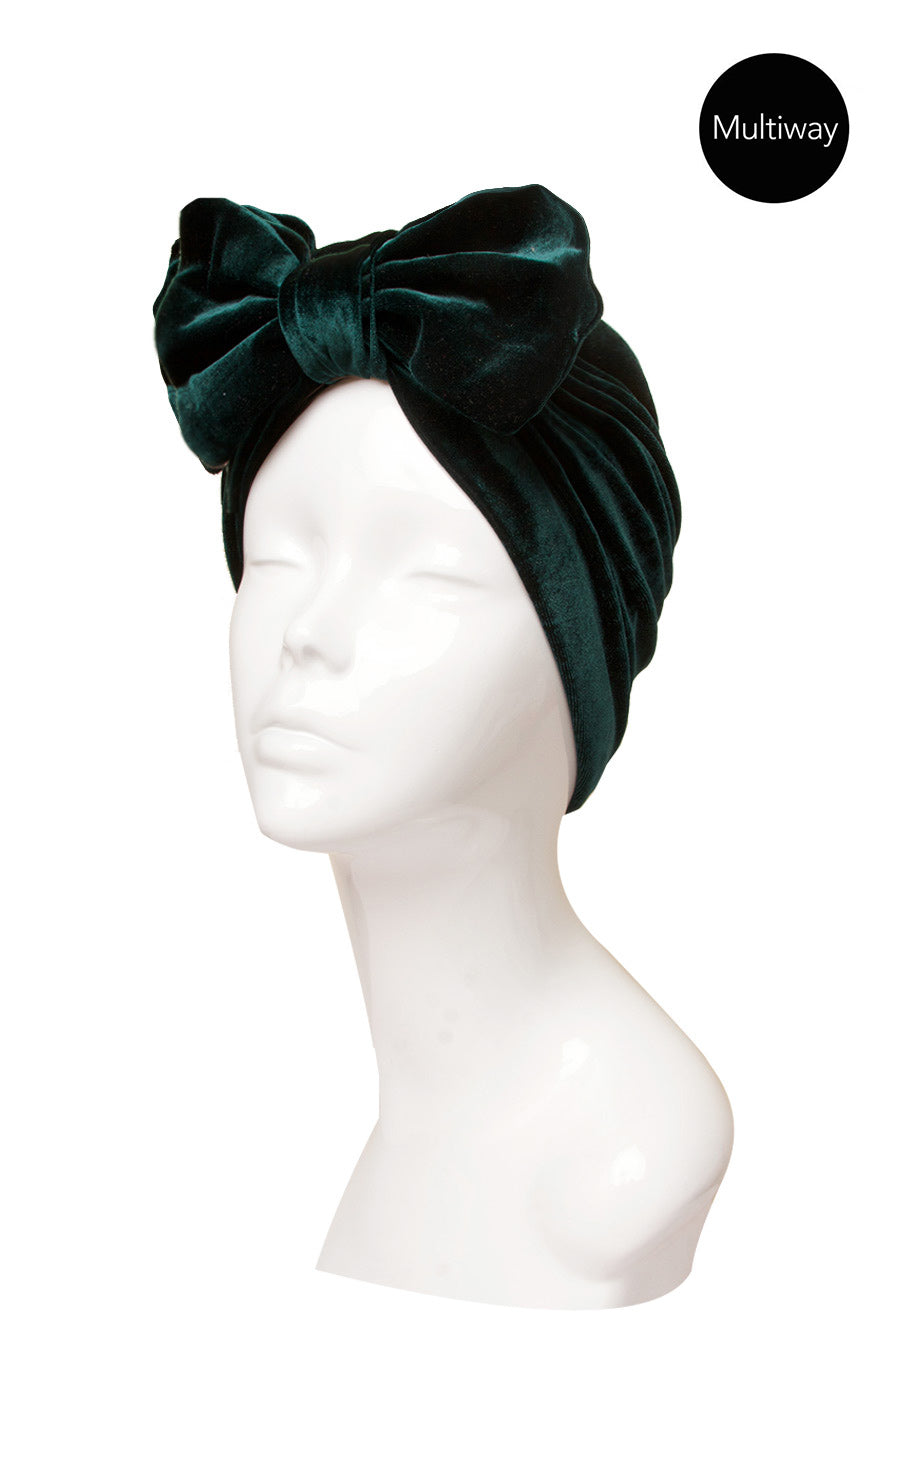 Luxe Bottle Green bow turban hat - reversible and adjustable.